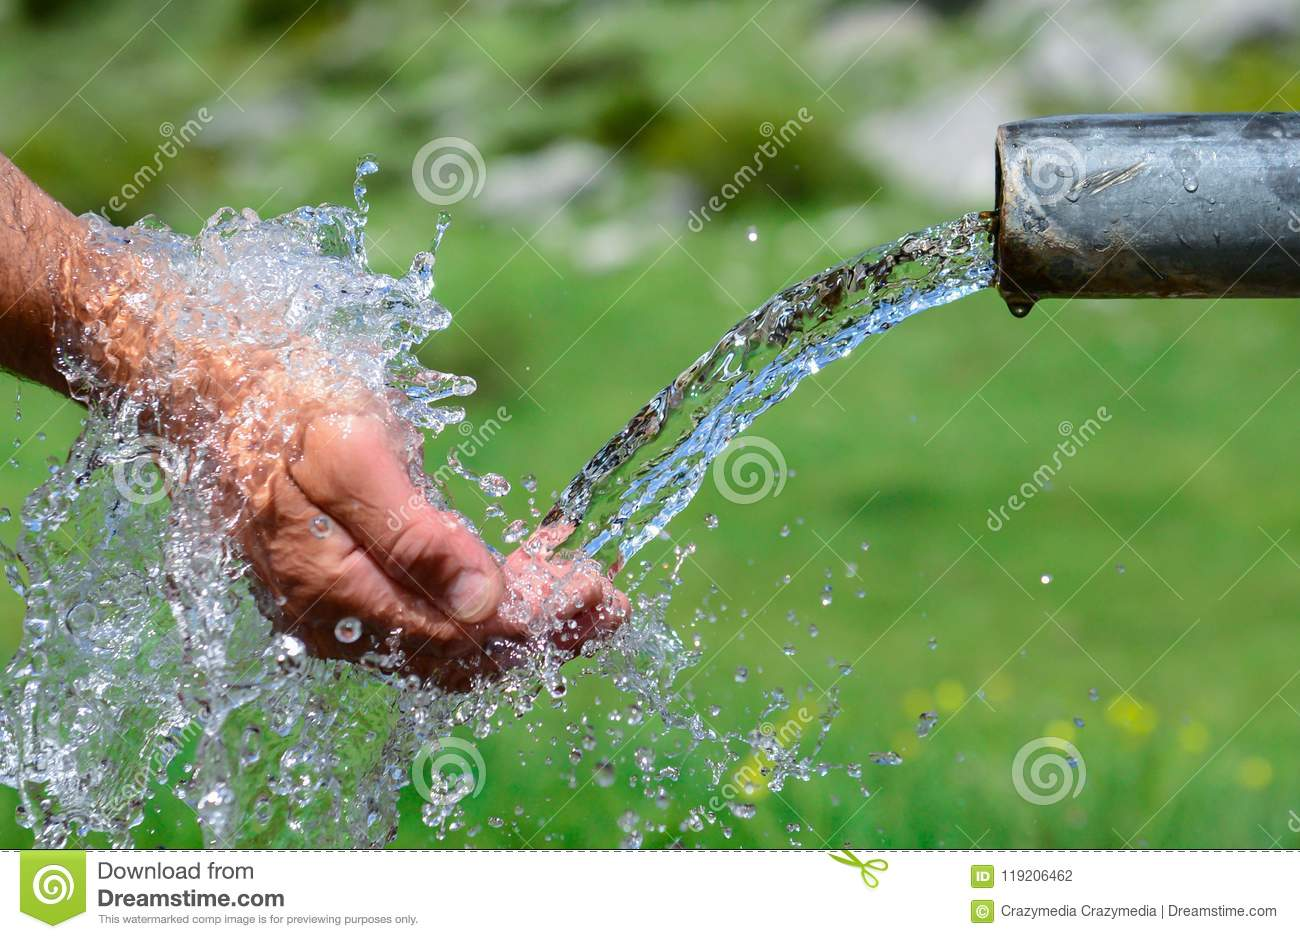 Drinkable Fresh And Clean Water Sources Stock Photo